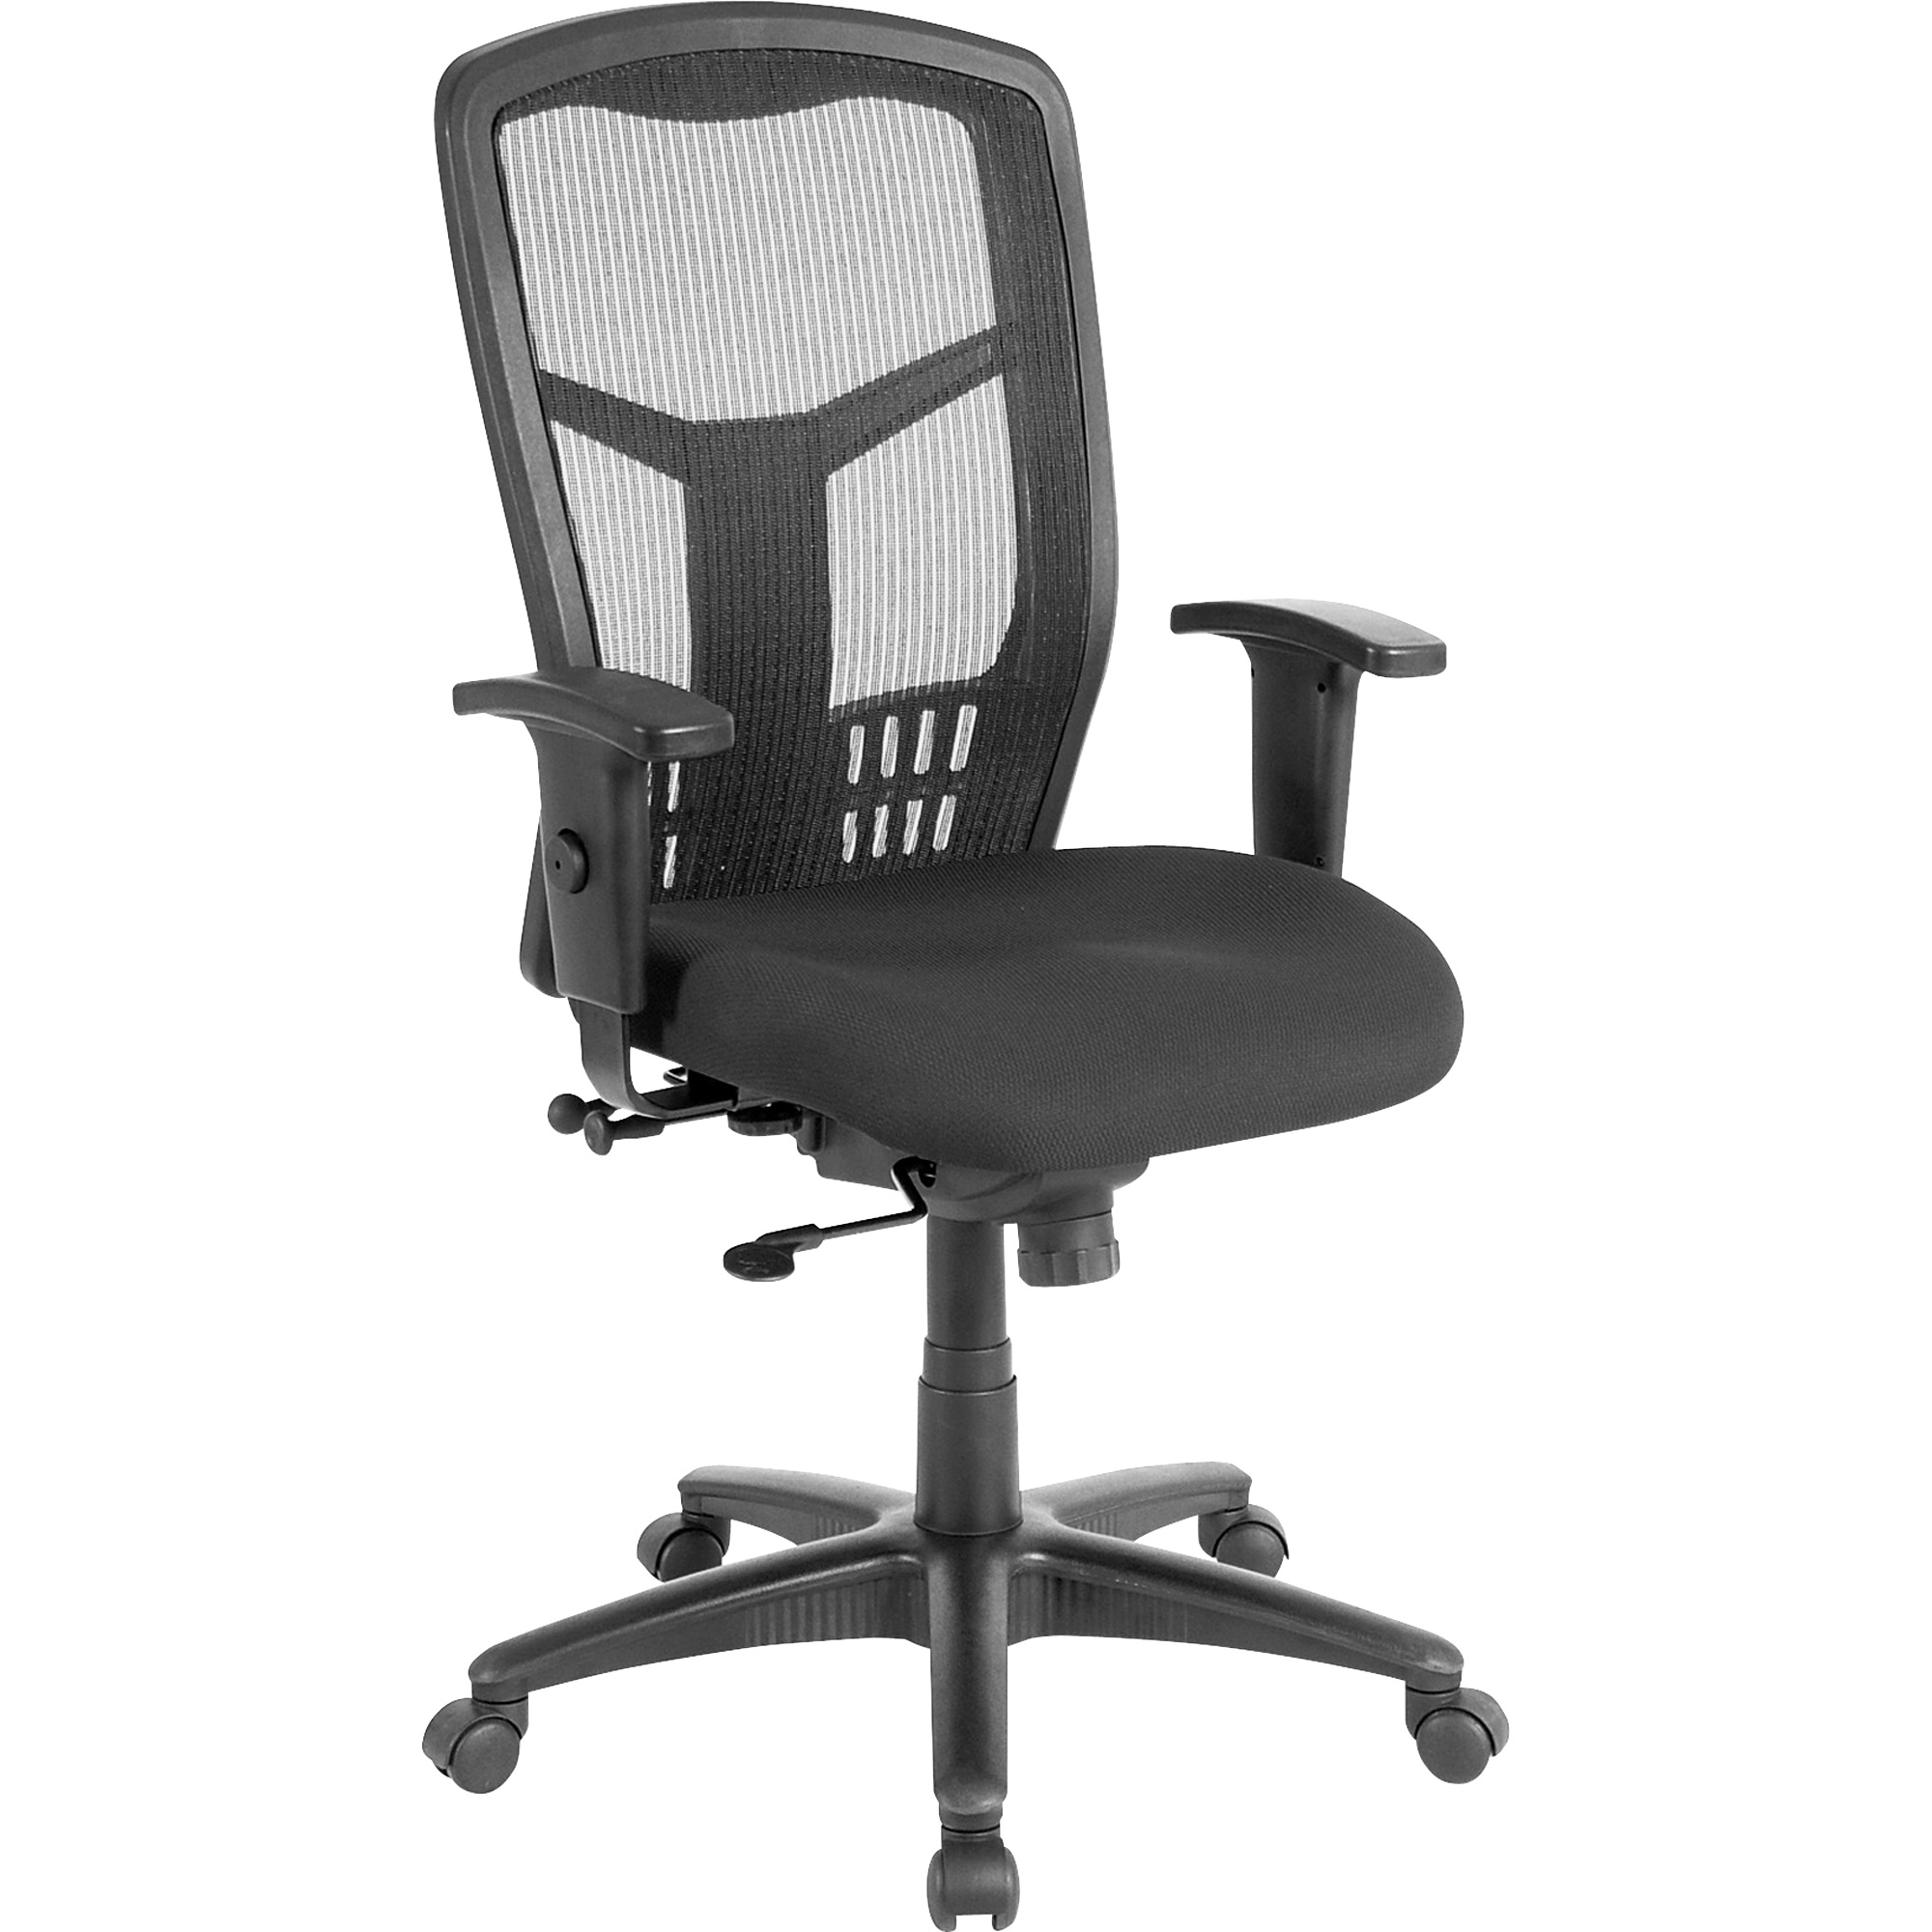 Lorell Executive High-back Swivel Chair, Black